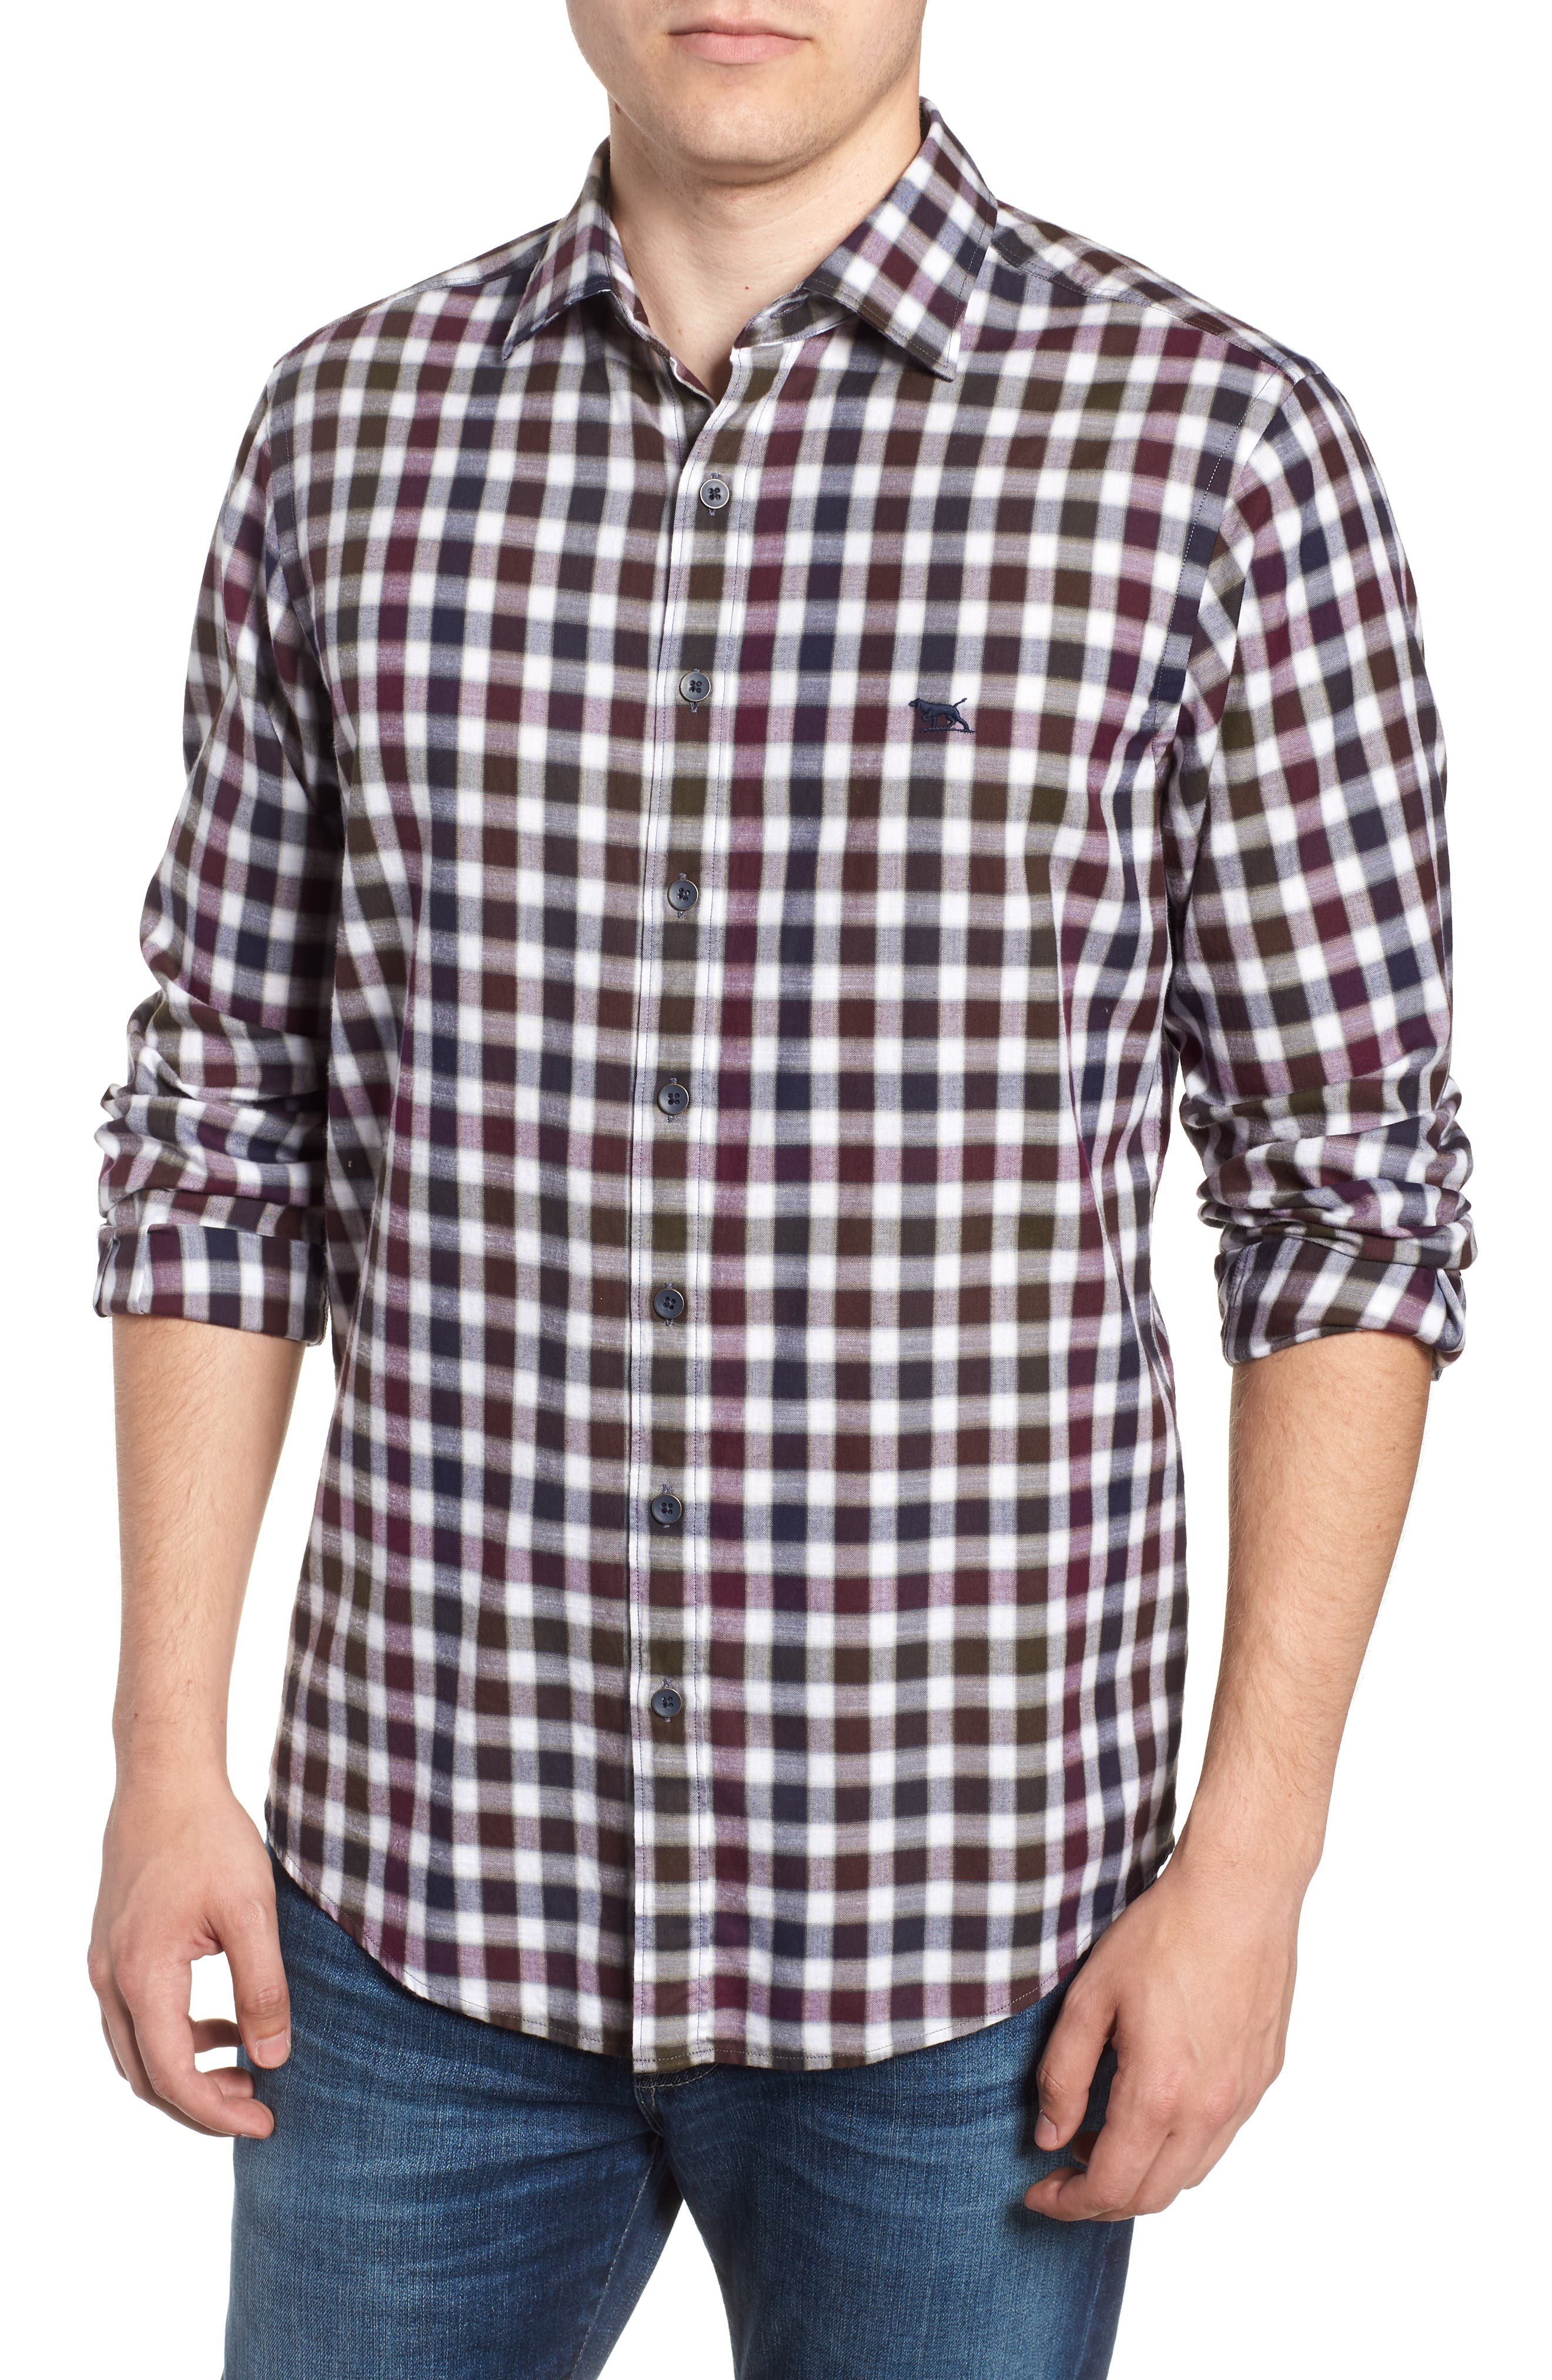 RODD AND GUNN Harvest Ave Regular Fit Flannel Sport Shirt at Nordstrom Rack